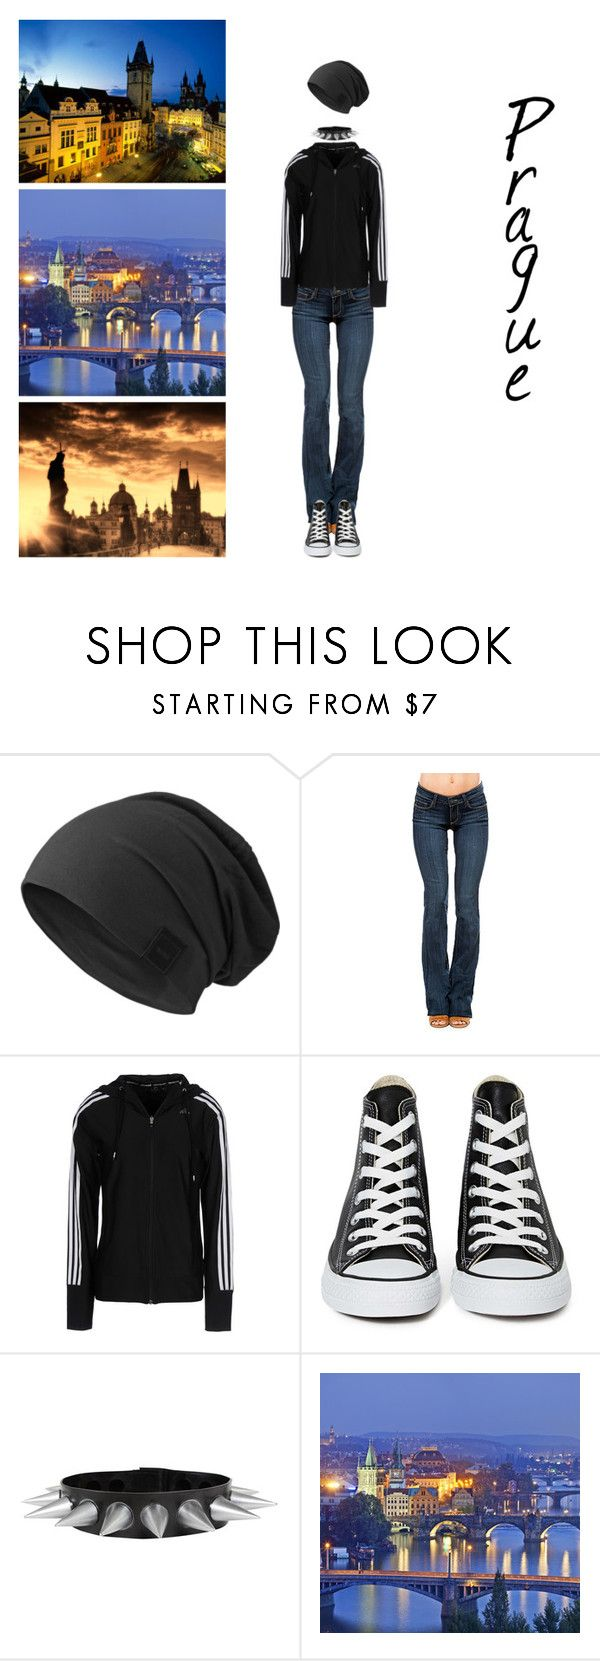 """""""Pretty in Prague"""" by x666x999x ❤ liked on Polyvore featuring Paige Denim, adidas, Converse, women's clothing, women's fashion, women, female, woman, misses and juniors"""